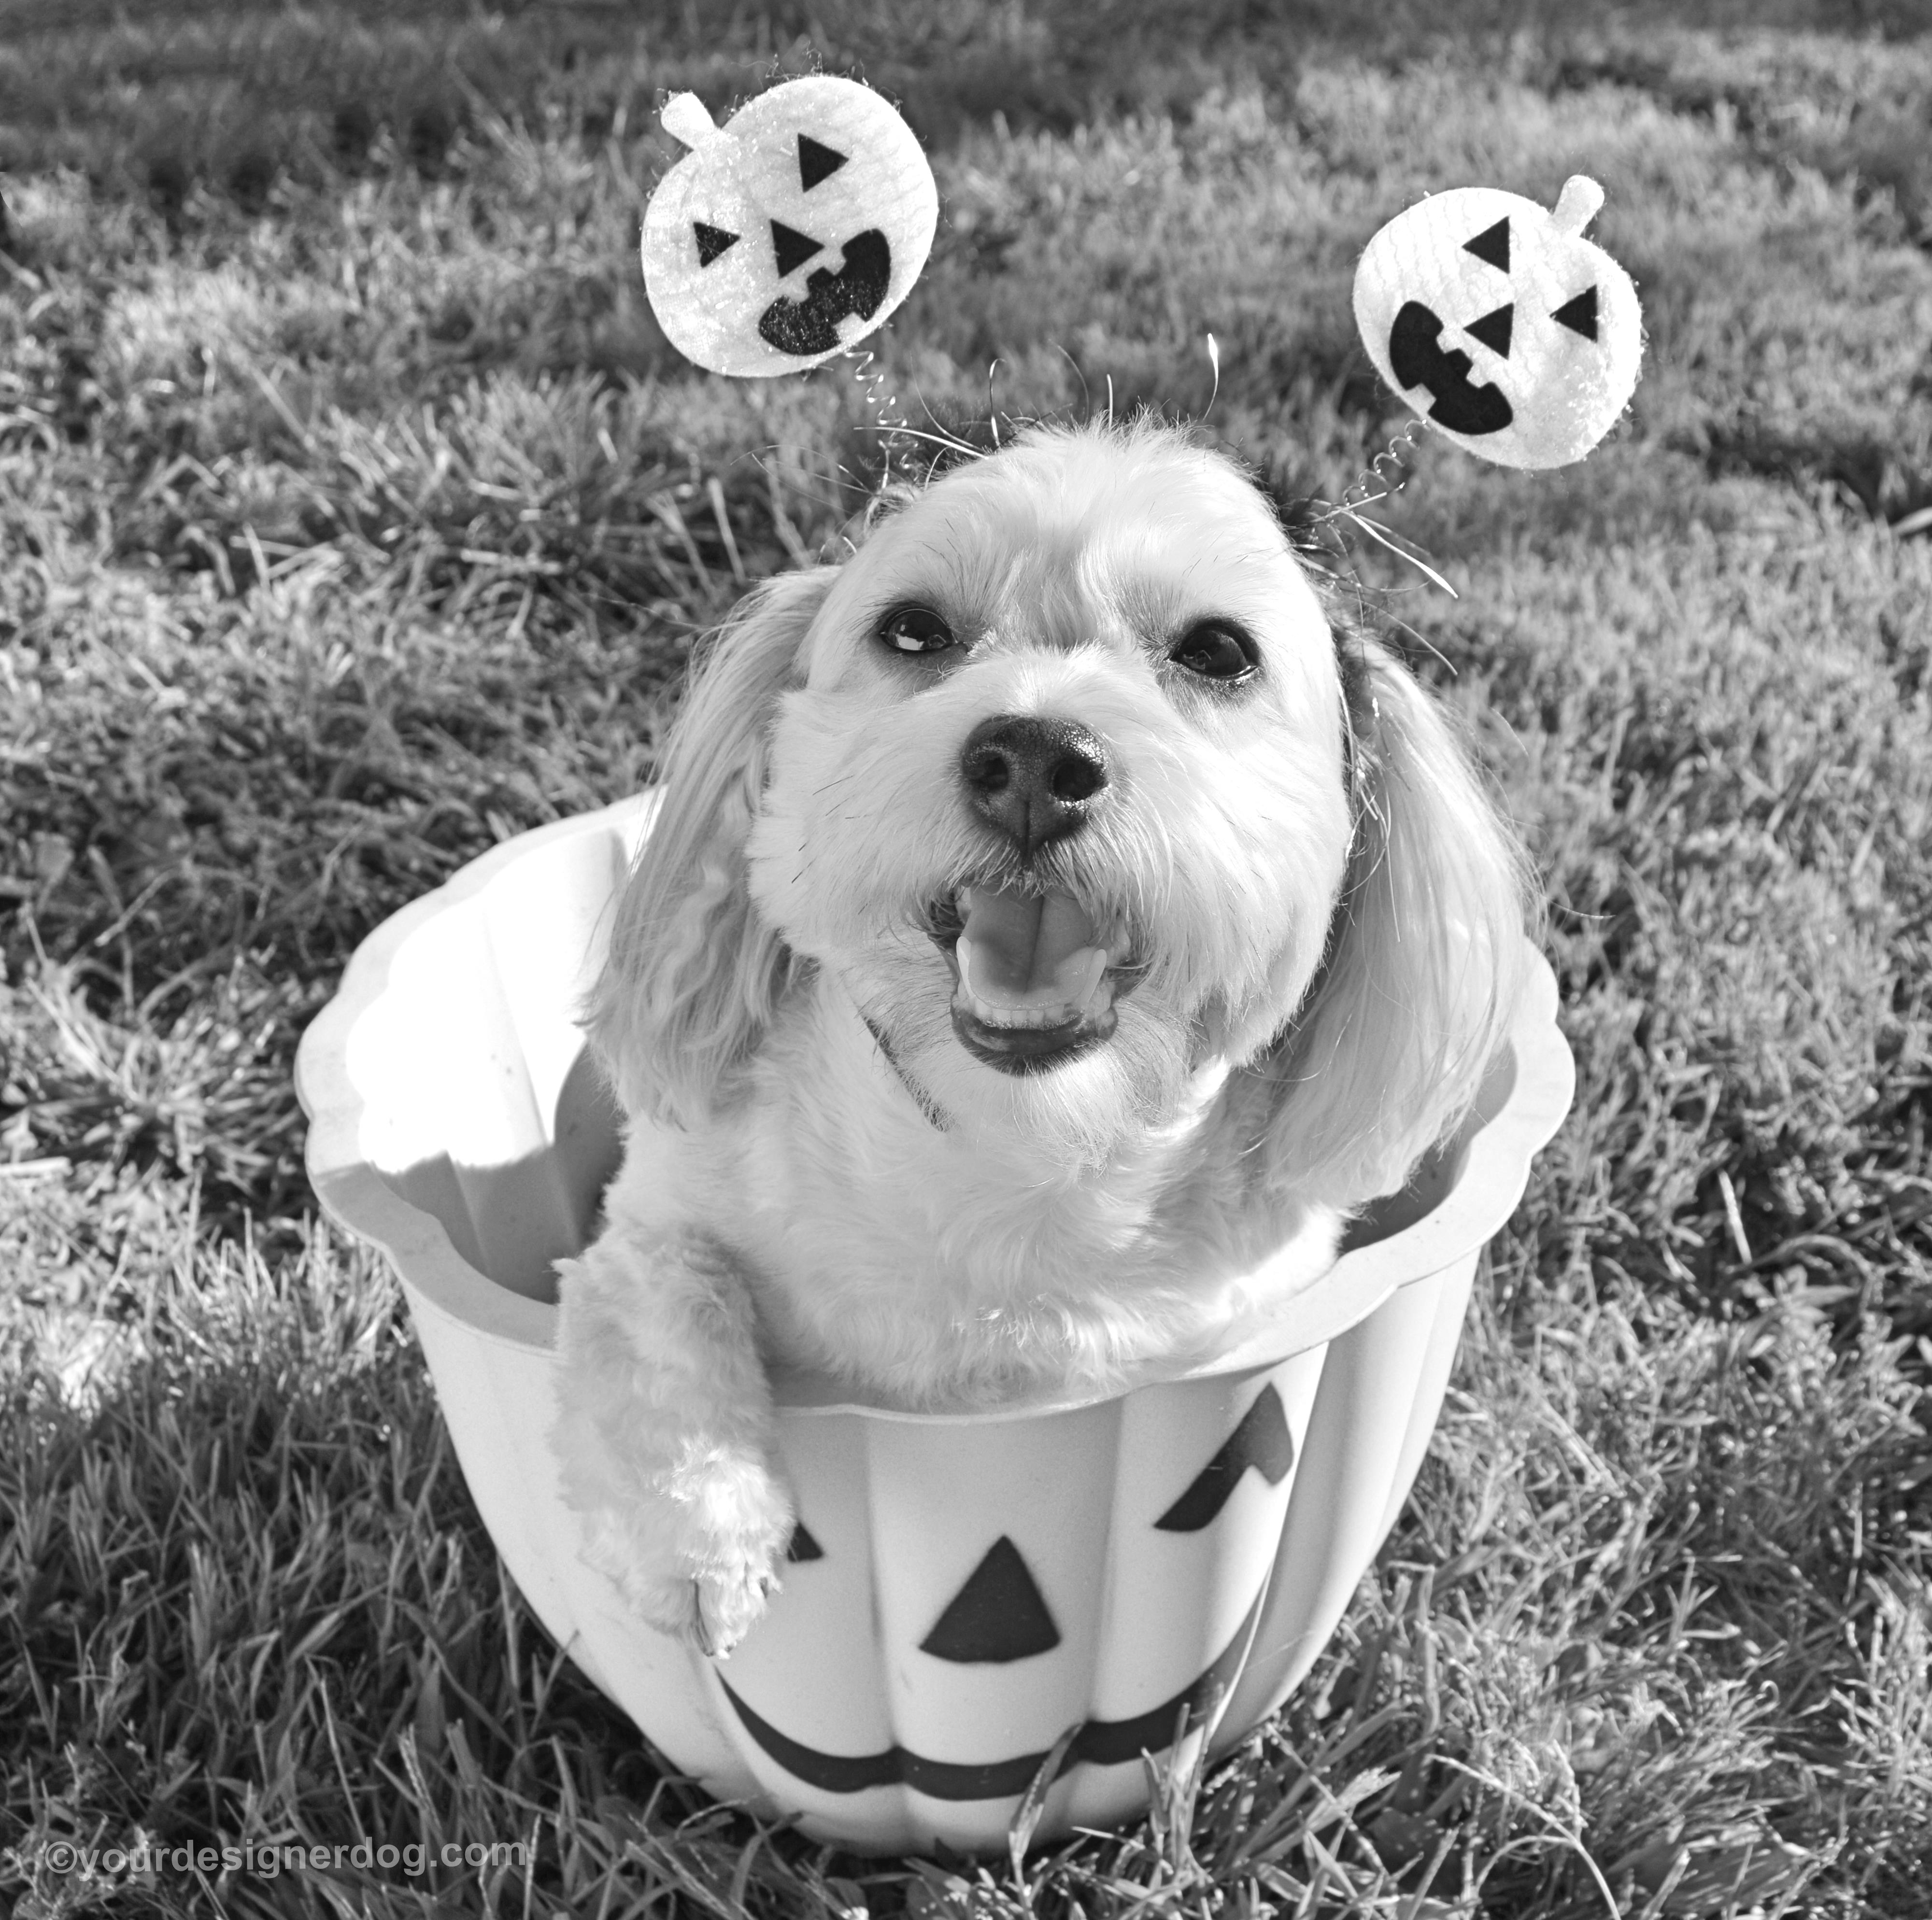 Black and White and Ready for Halloween!